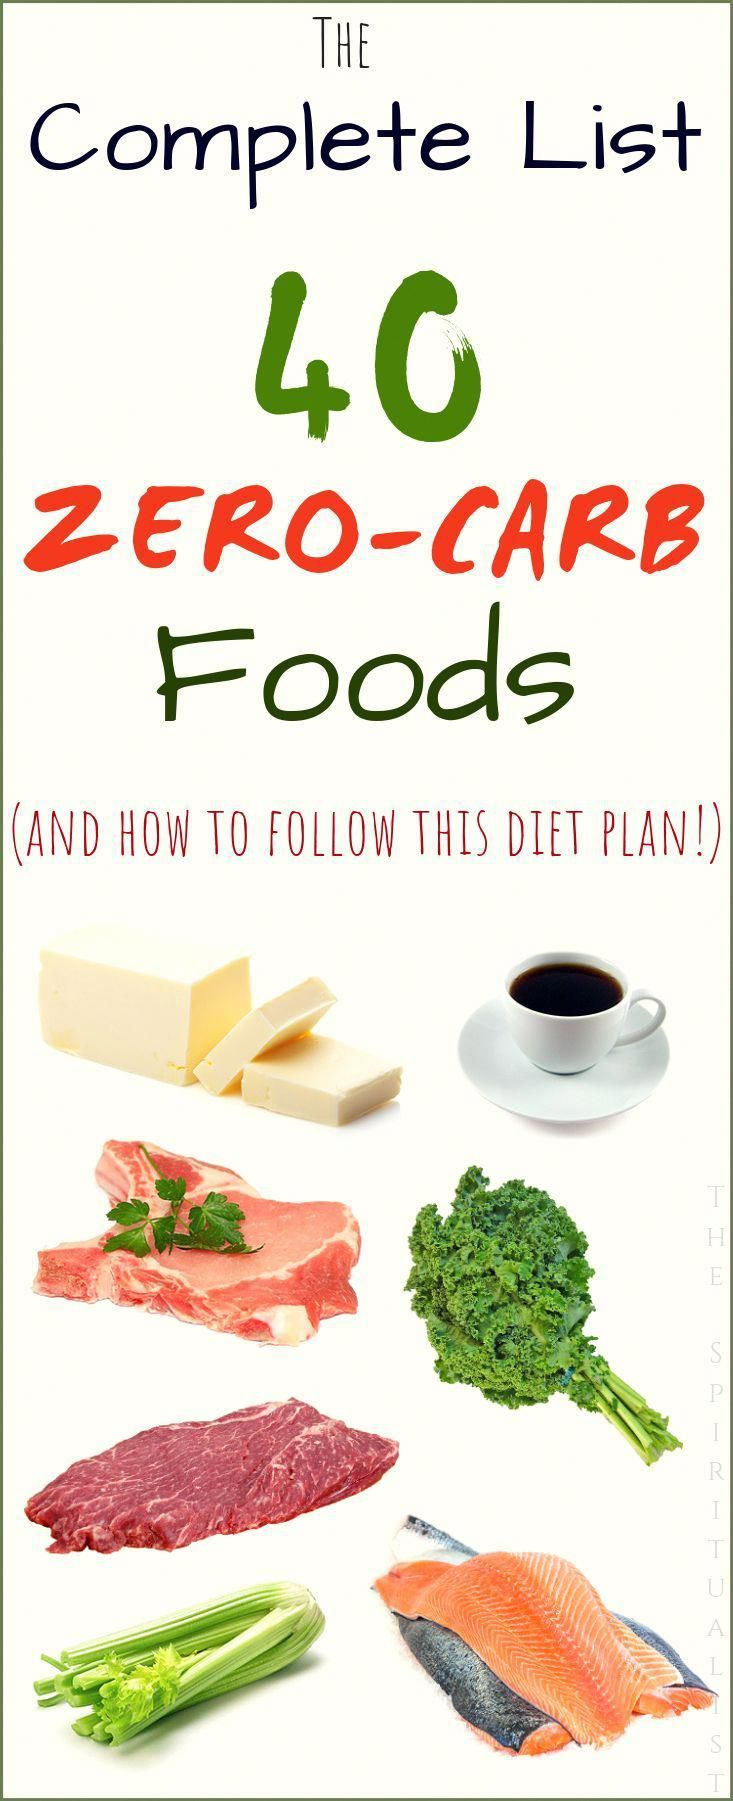 The complete list of ZEROCARB foods. healthyfoodlist